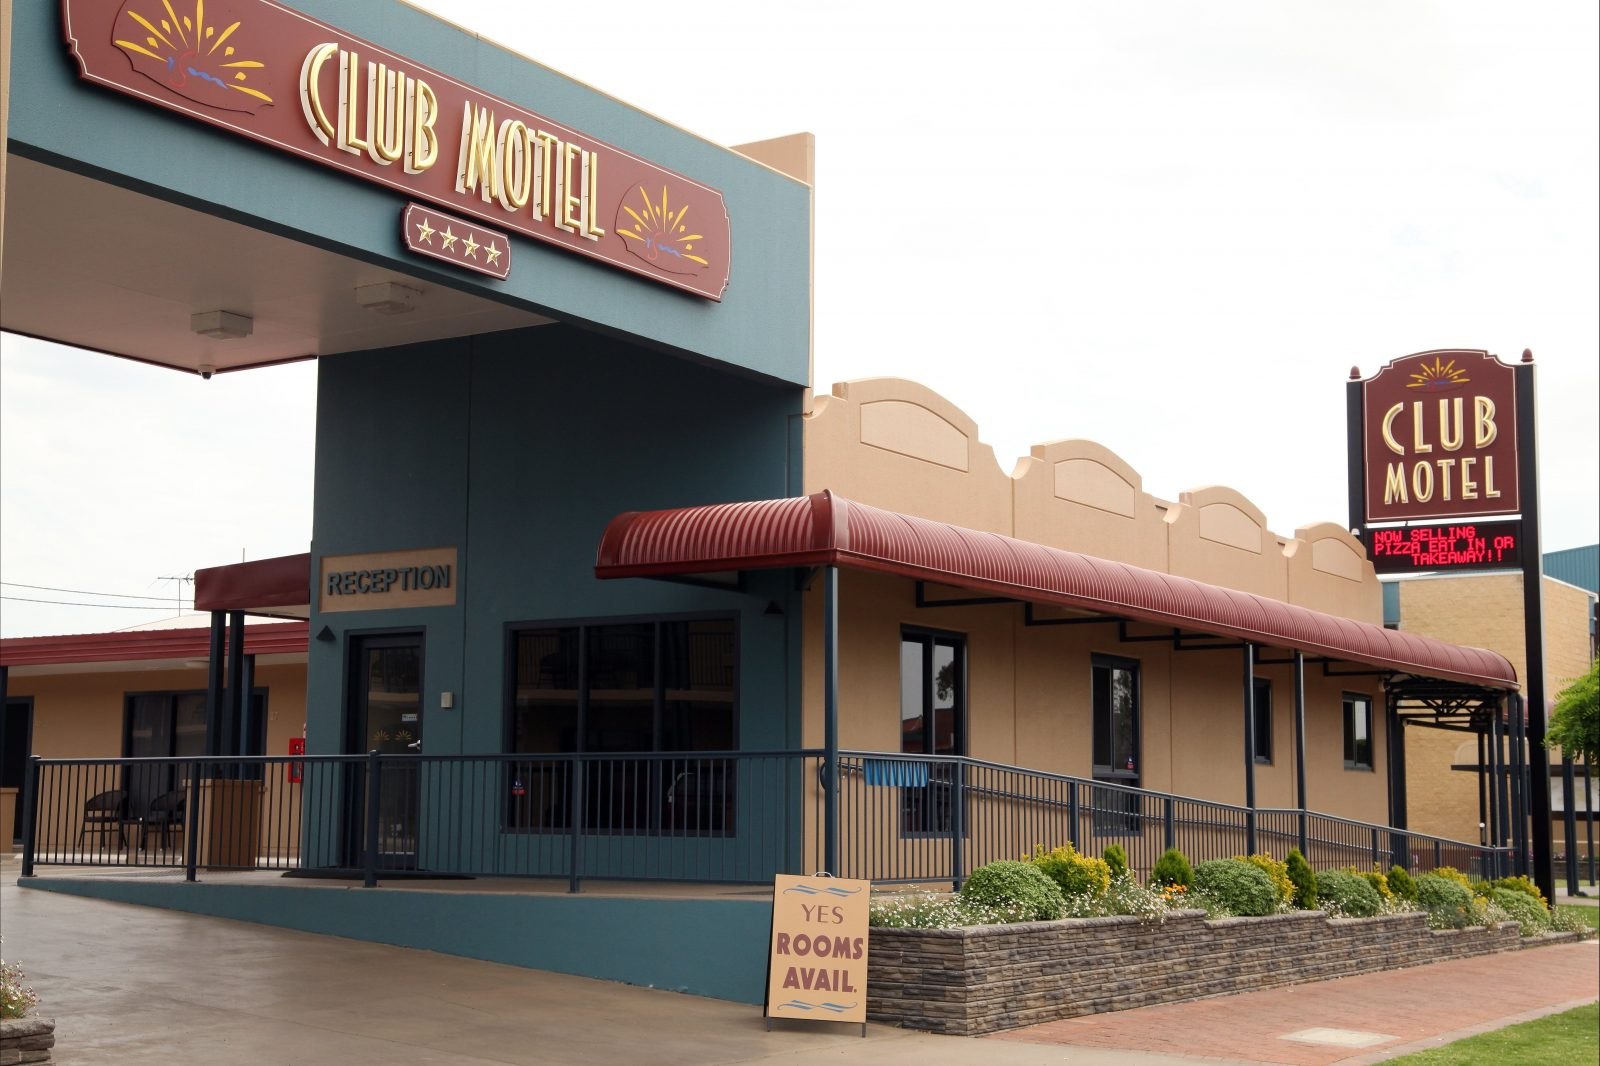 Front of the Club Motel showing driveway and reception